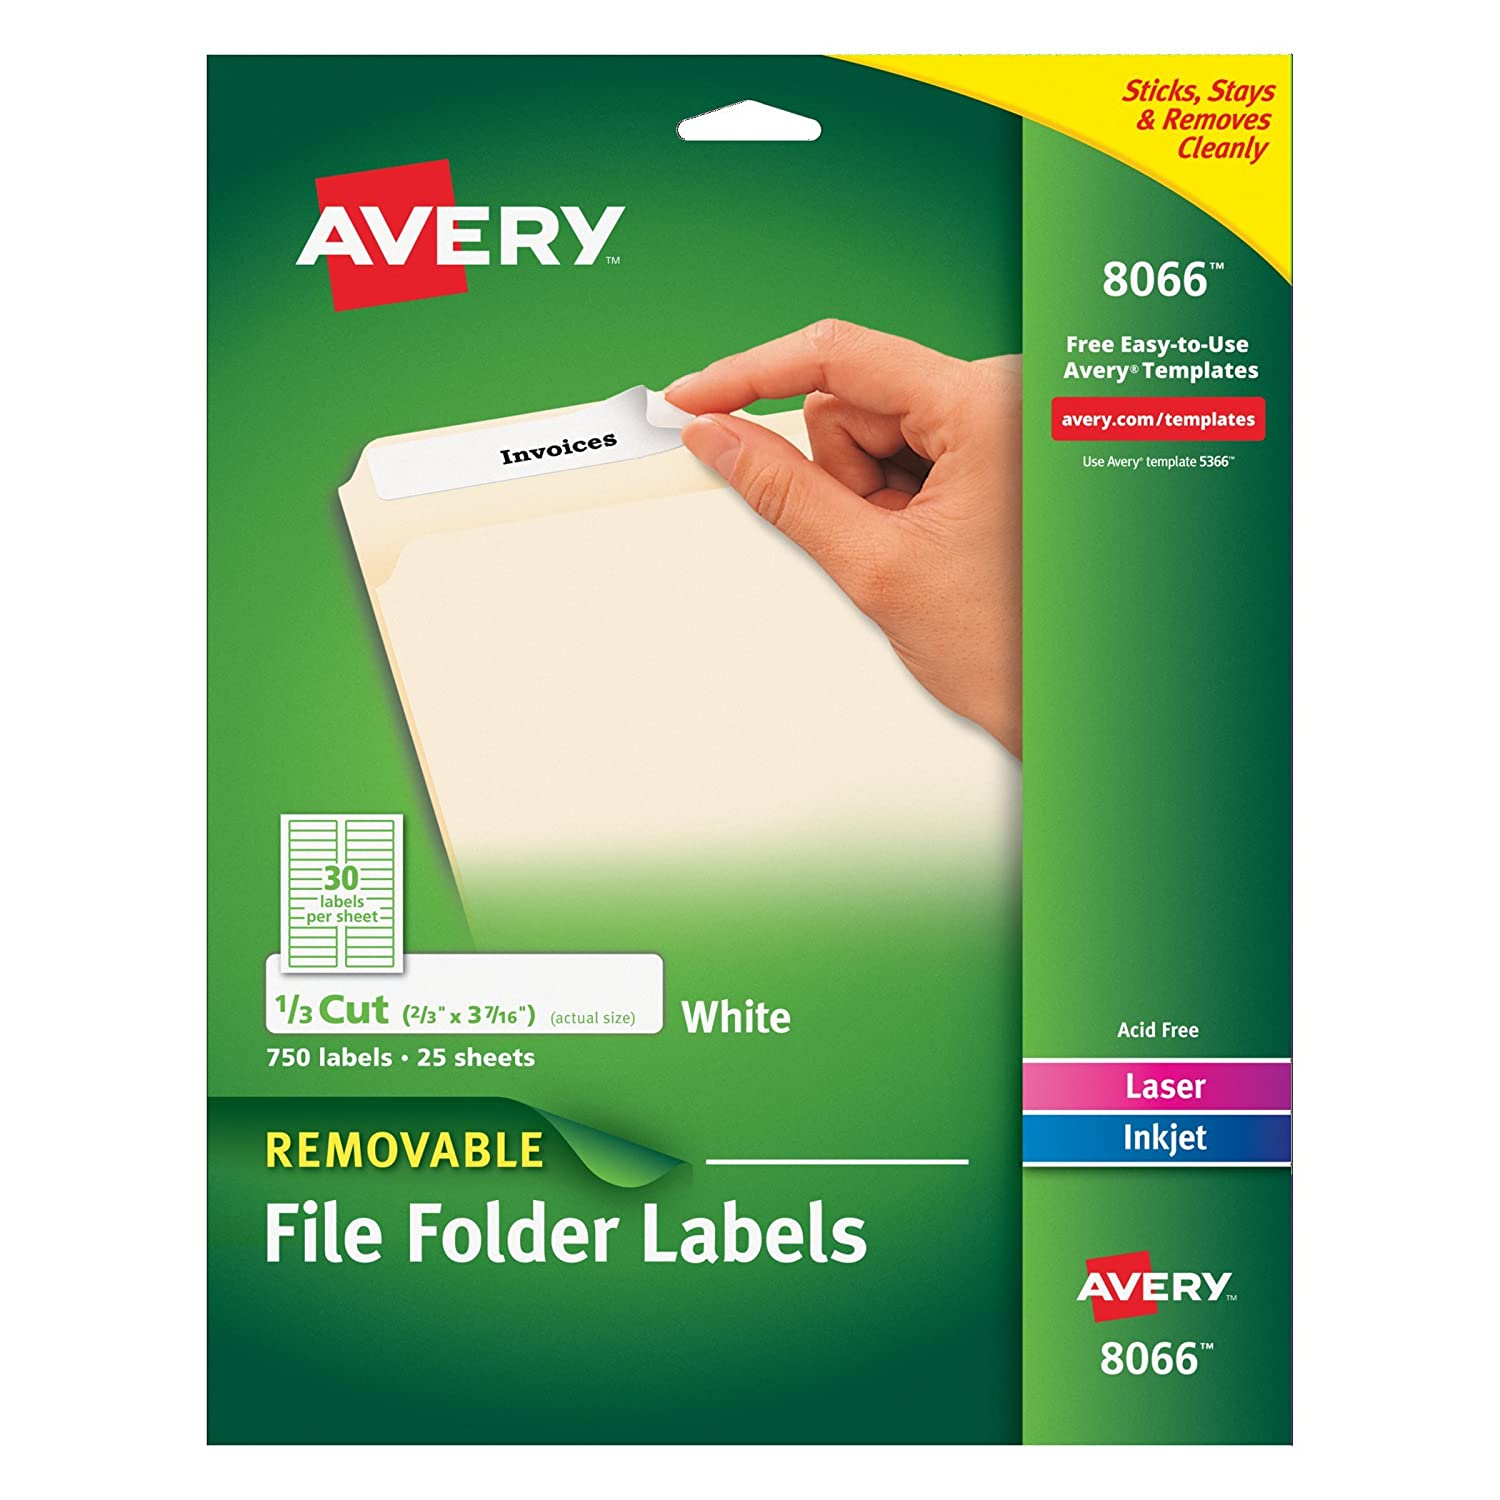 Amazon.com : Avery Removable White File Folder Labels, 750 Pack ...